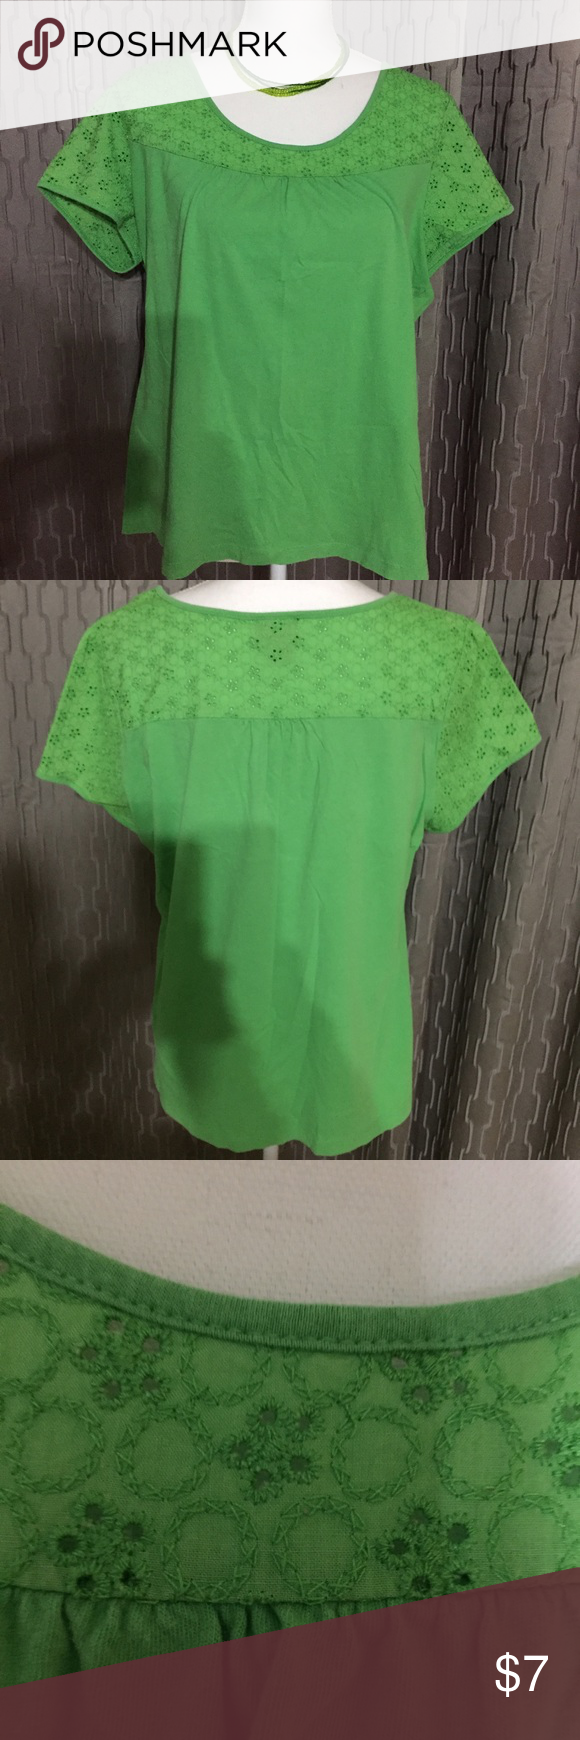 Gorgeous Green Blouse I just love this color green, Blouse 👚 it goes great with jeans 👖 in great condition, it's  💯% cotton. Classic Elements Tops Blouses